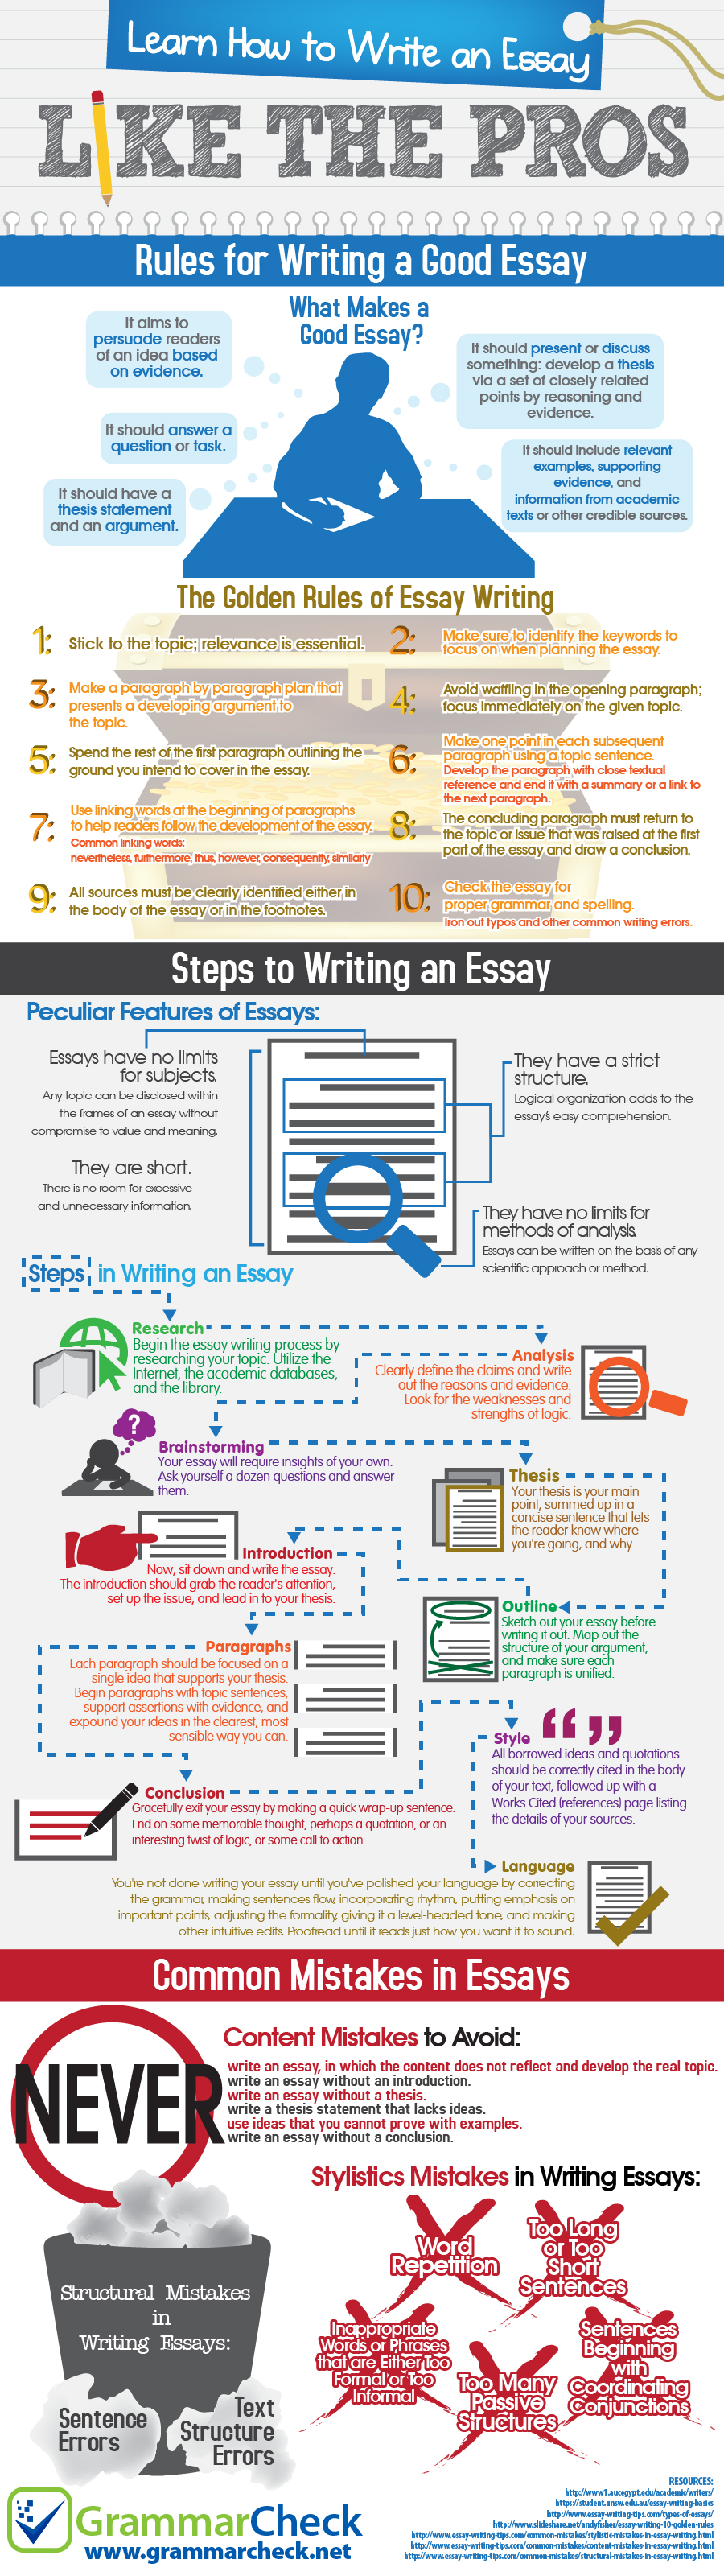 essay review service essay review service college application essay review service law school essay review service best do my